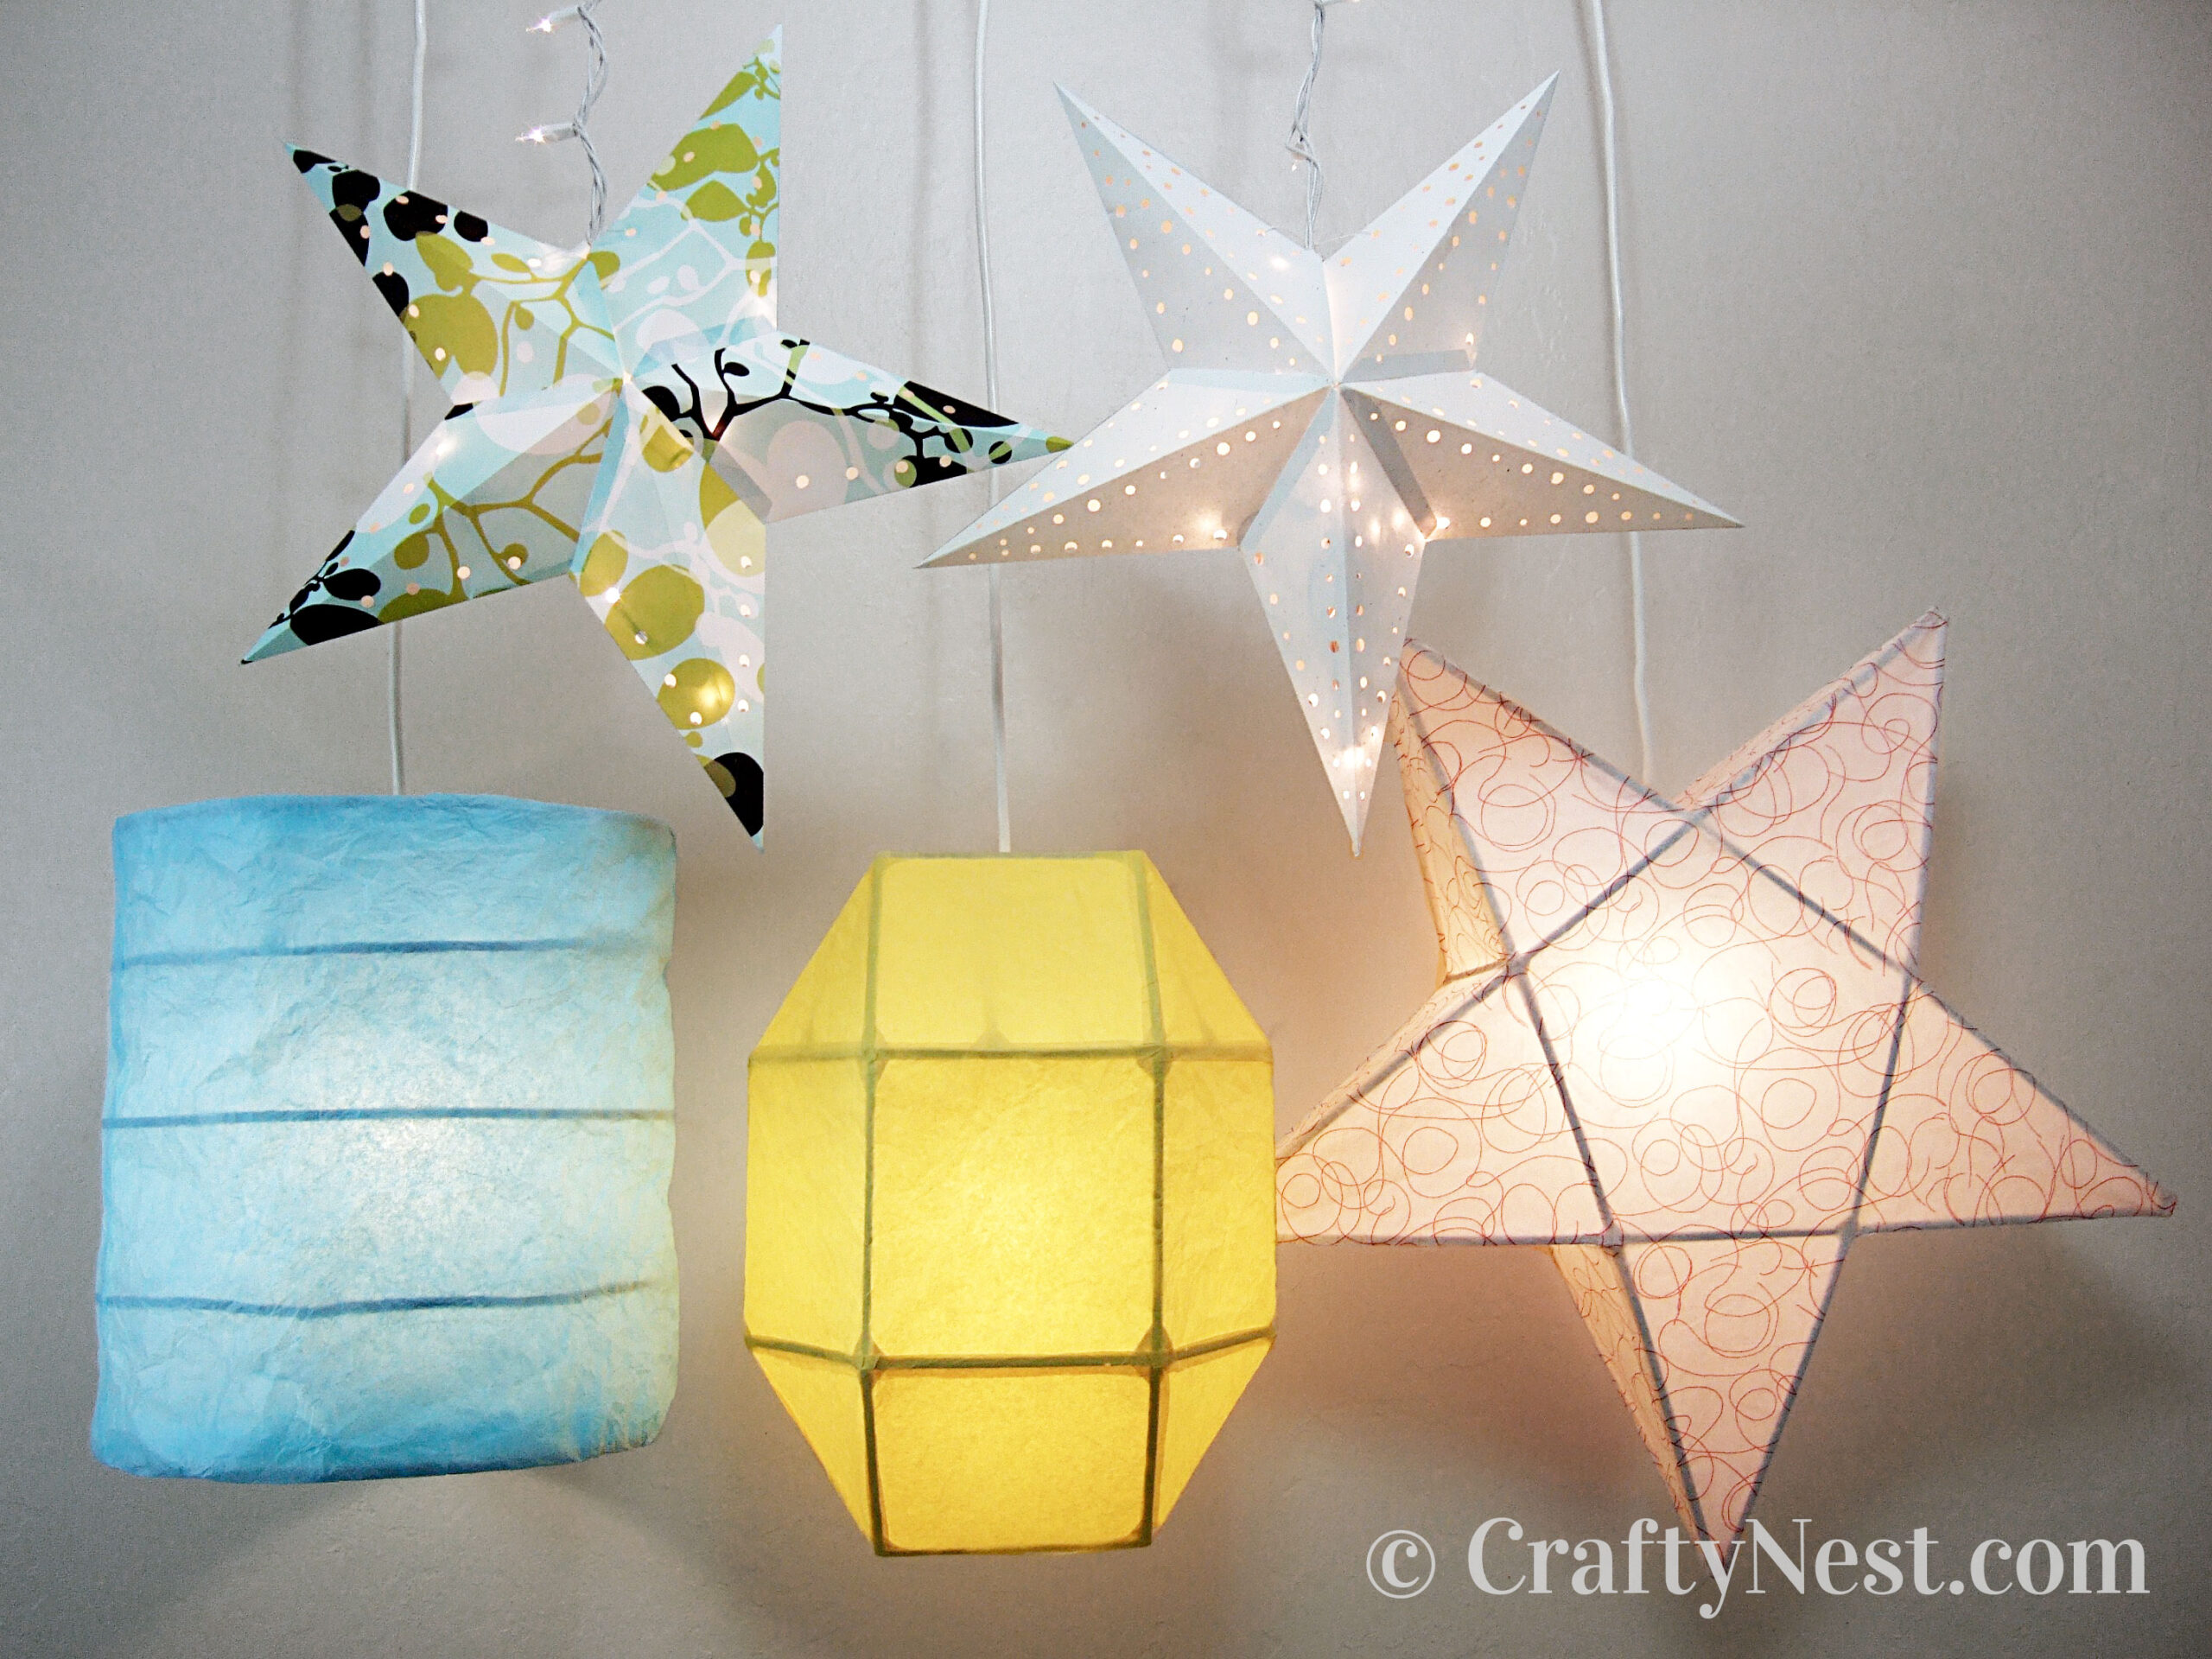 Handmade paper lanterns of different shapes, photo